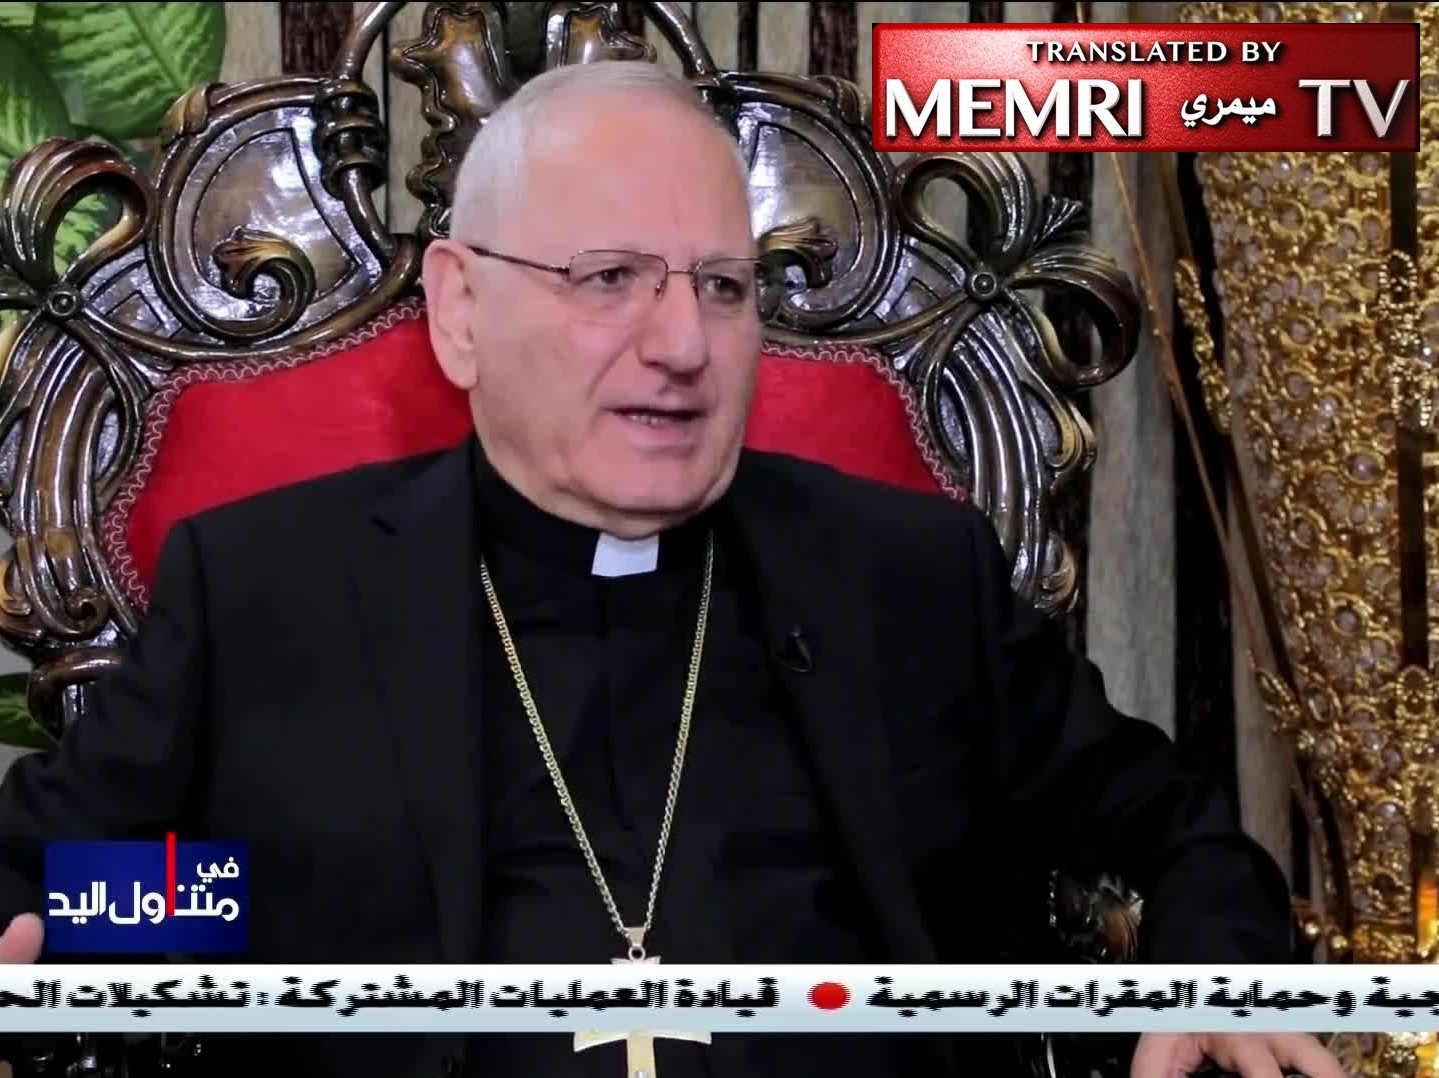 Iraqi Catholic Patriarch Louis Raphaël I Sako: Iraqi School Curricula Should Be Rewritten, Made More Tolerant of Other Religions; Christians in Iraq Are Discriminated against